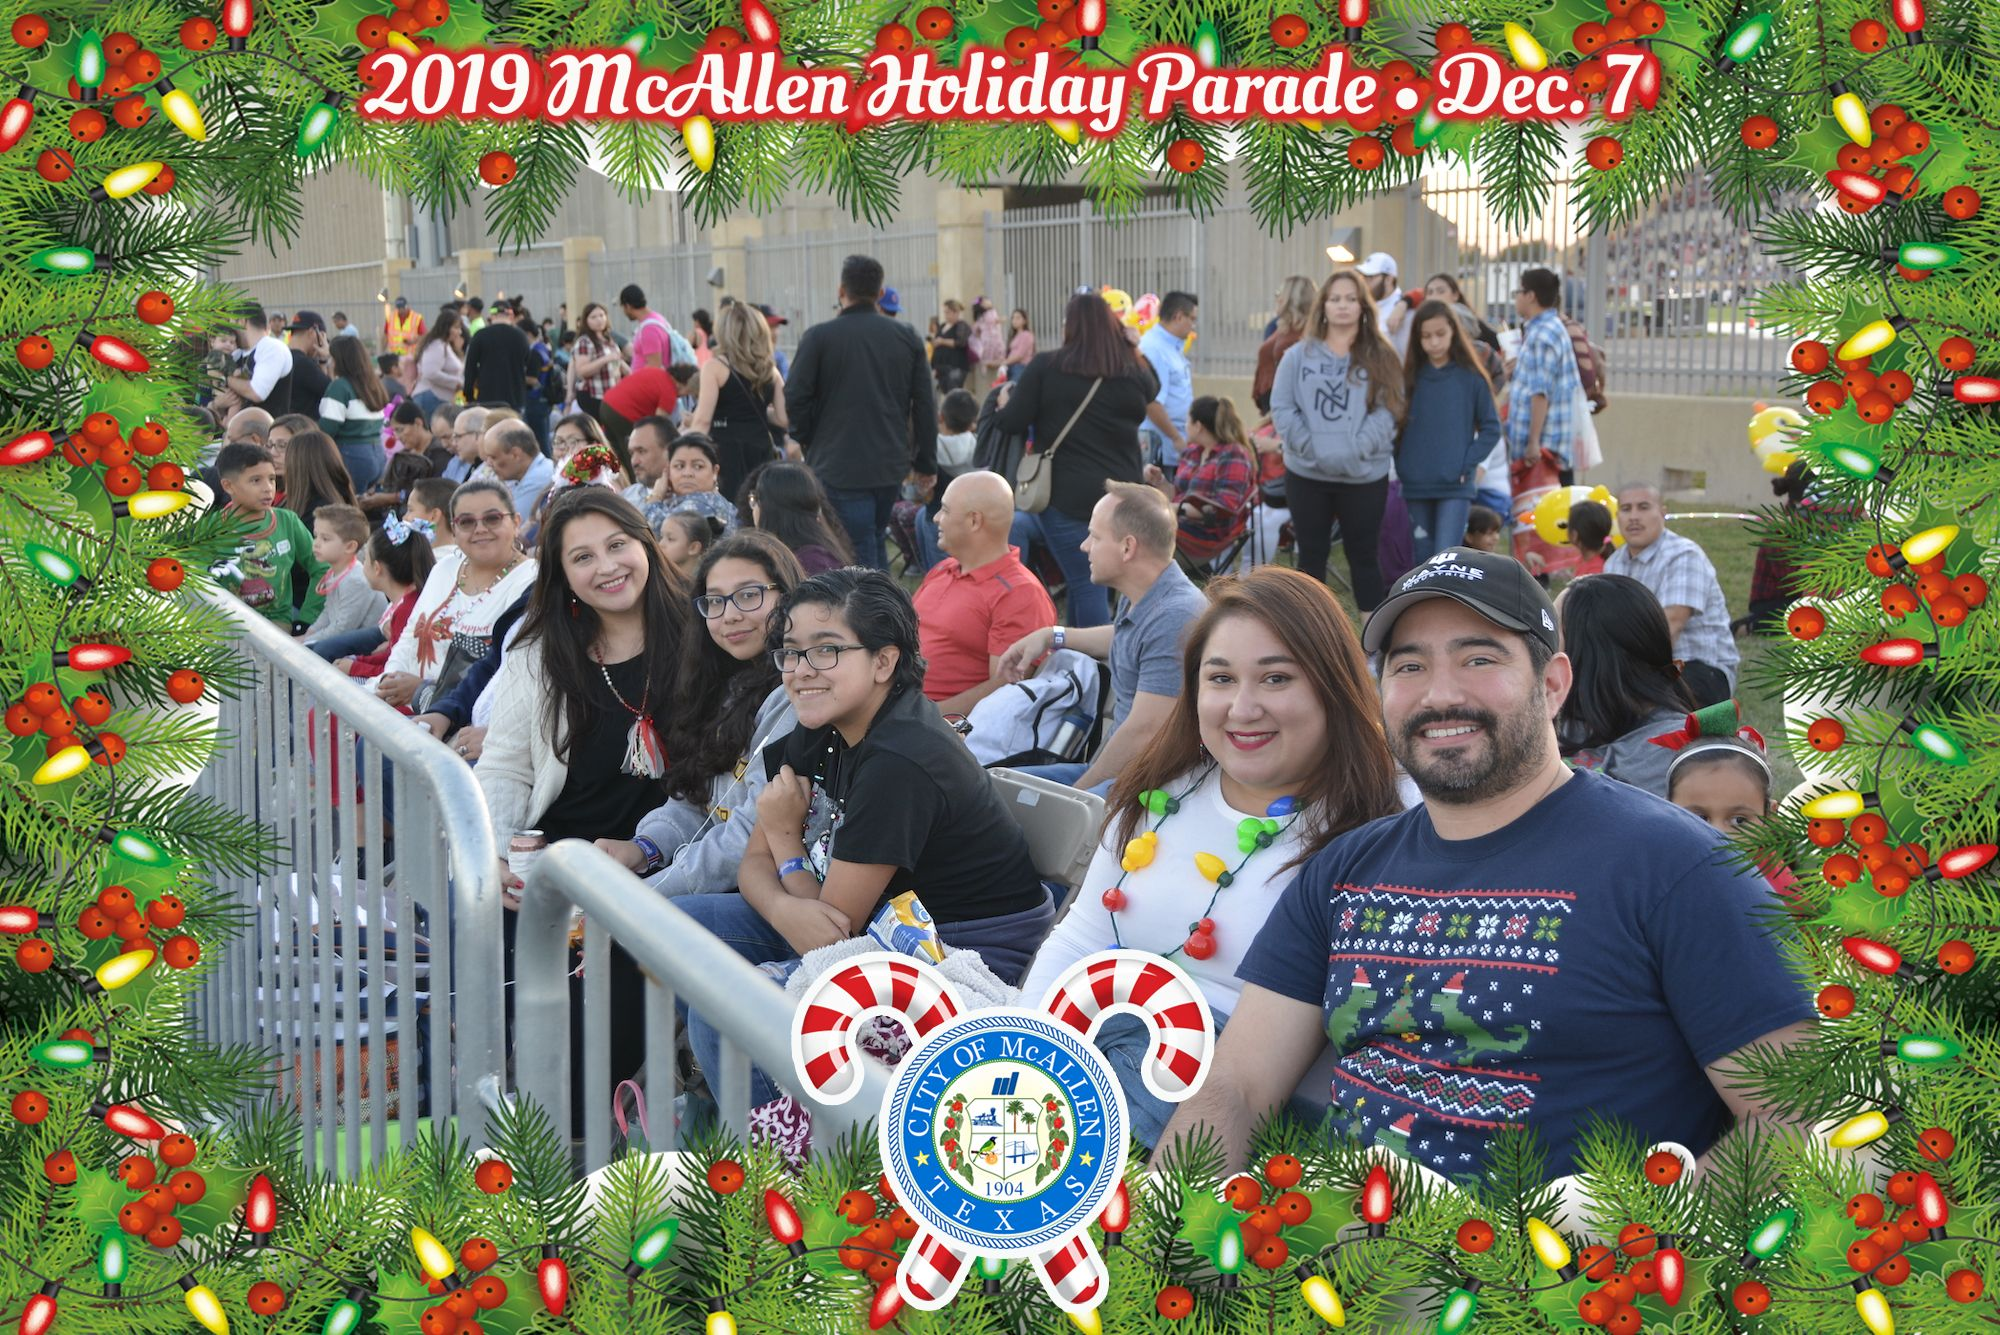 McAllen Holiday Parade December 7, 2019 – Gallery 2